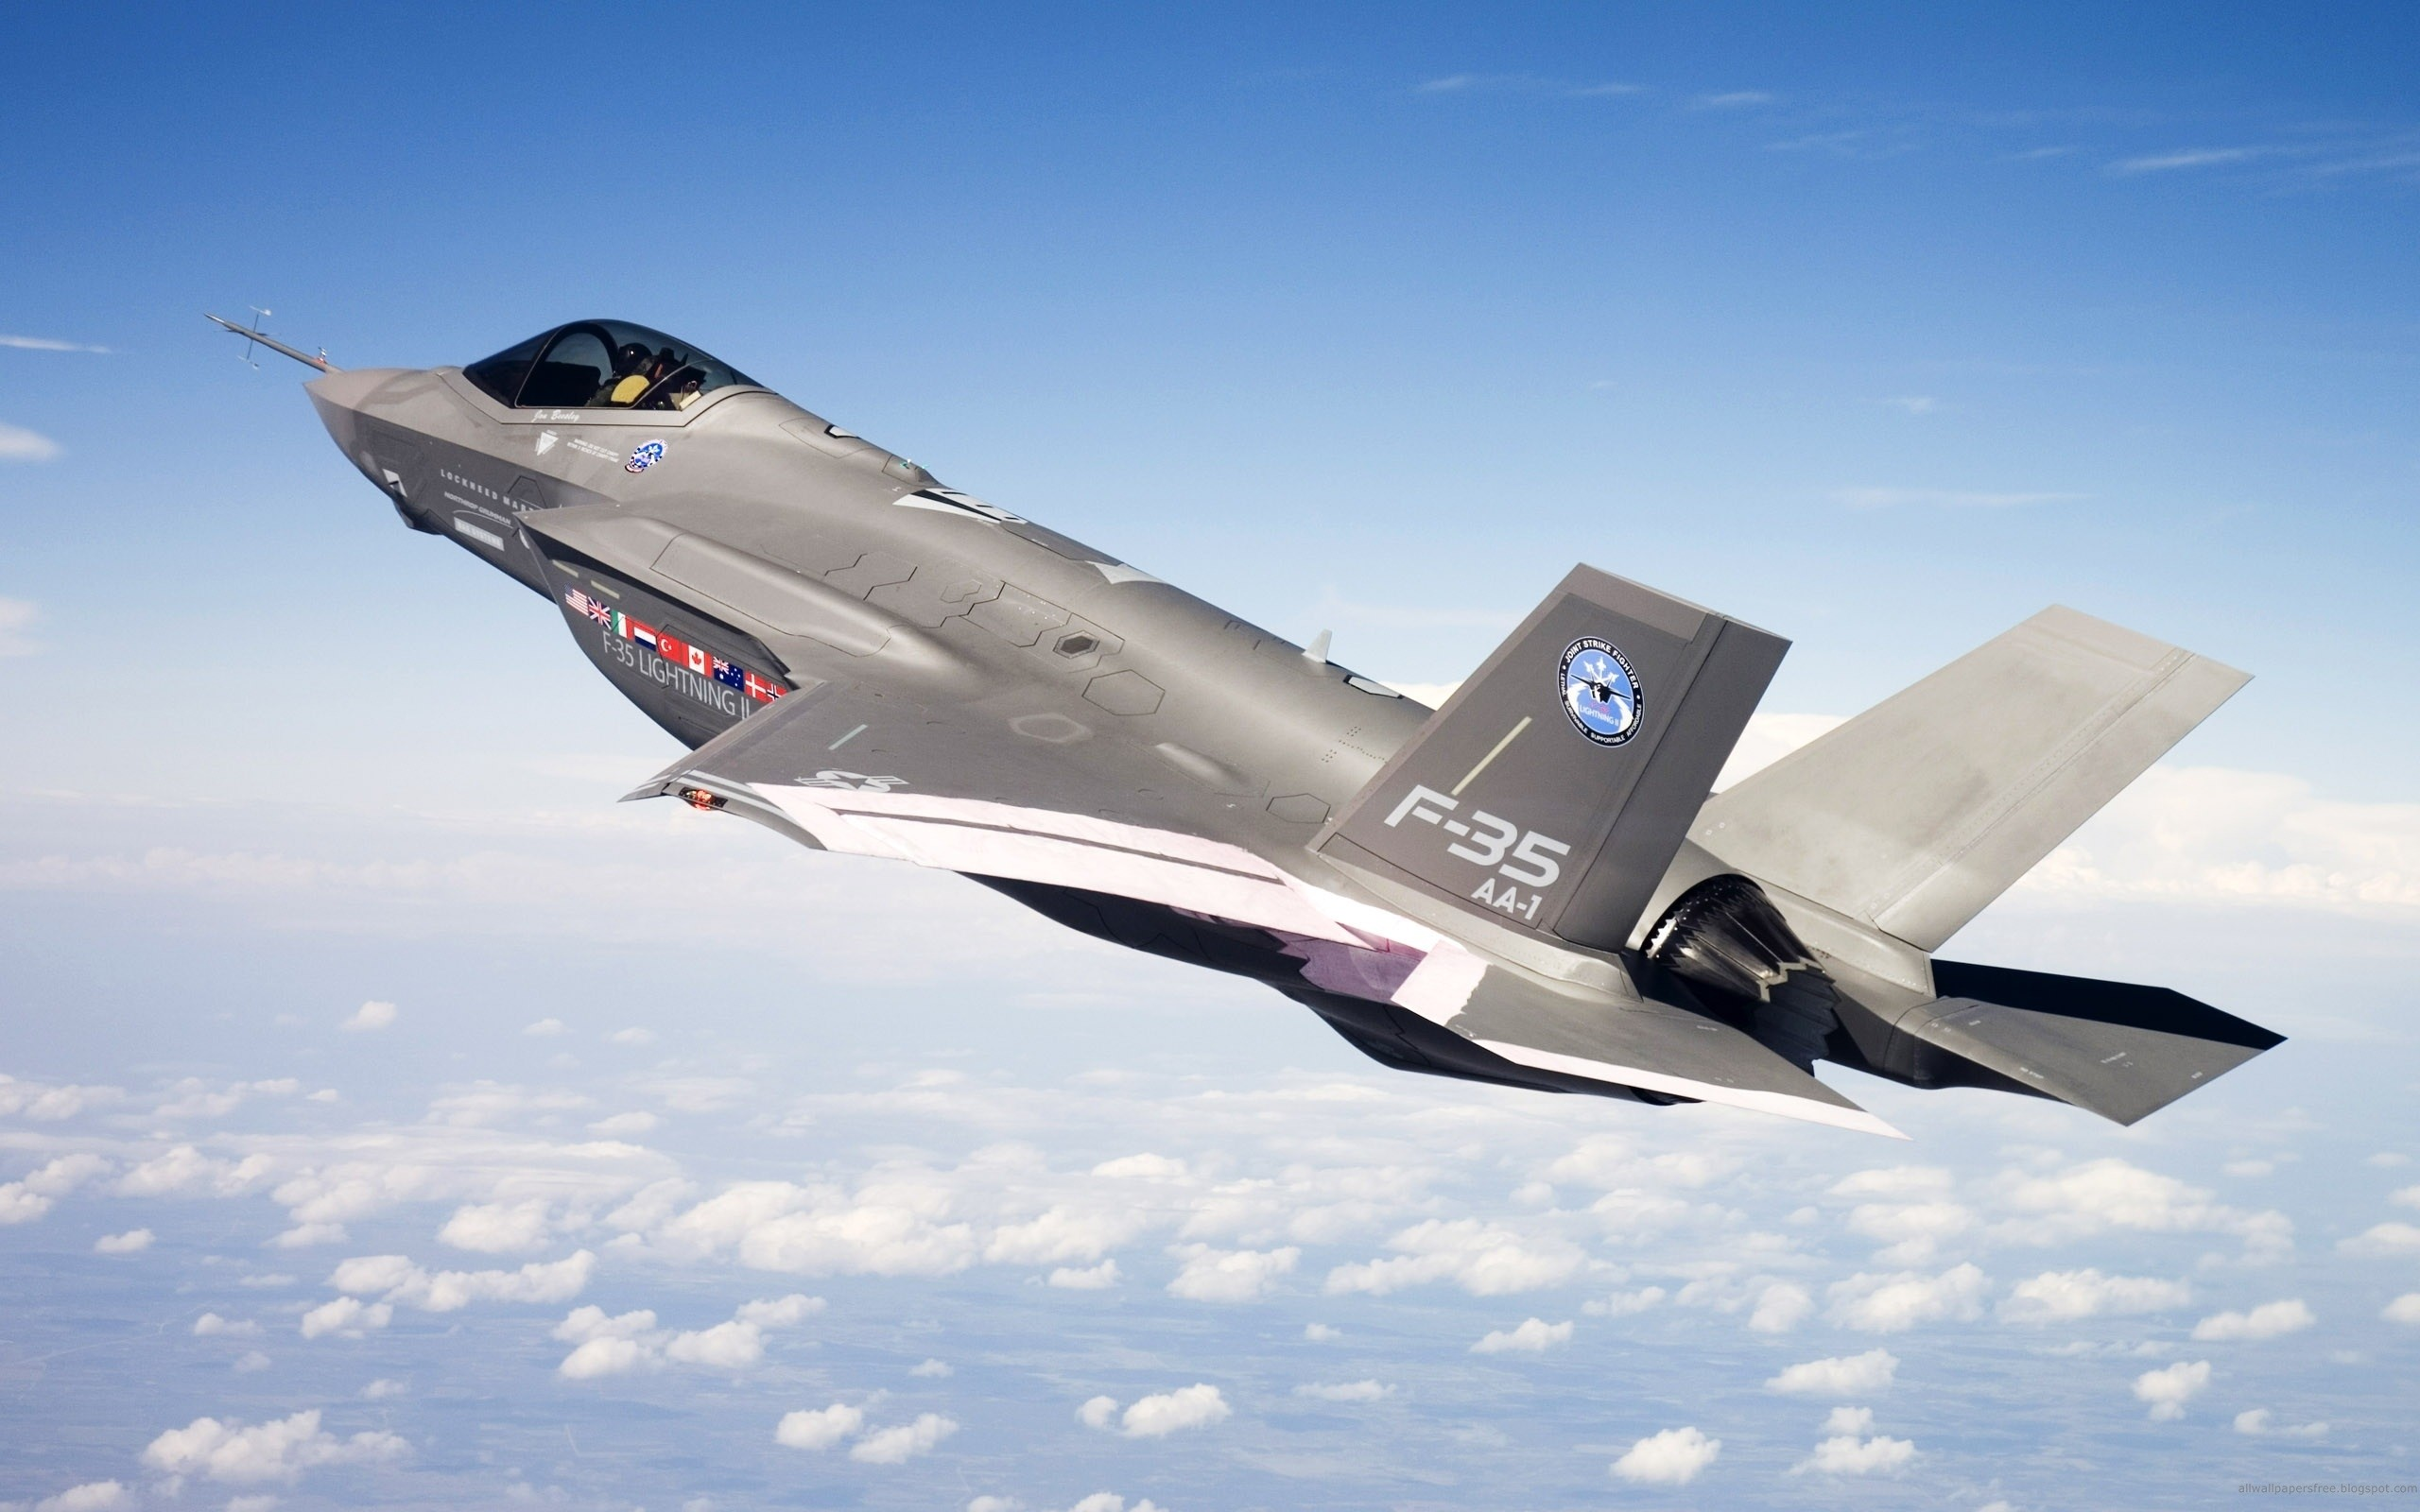 2560x1600 Title : f 35 lighting ii joint strike fighter wallpapers | wallpapers hd.  Dimension : 2560 x 1600. File Type : JPG/JPEG